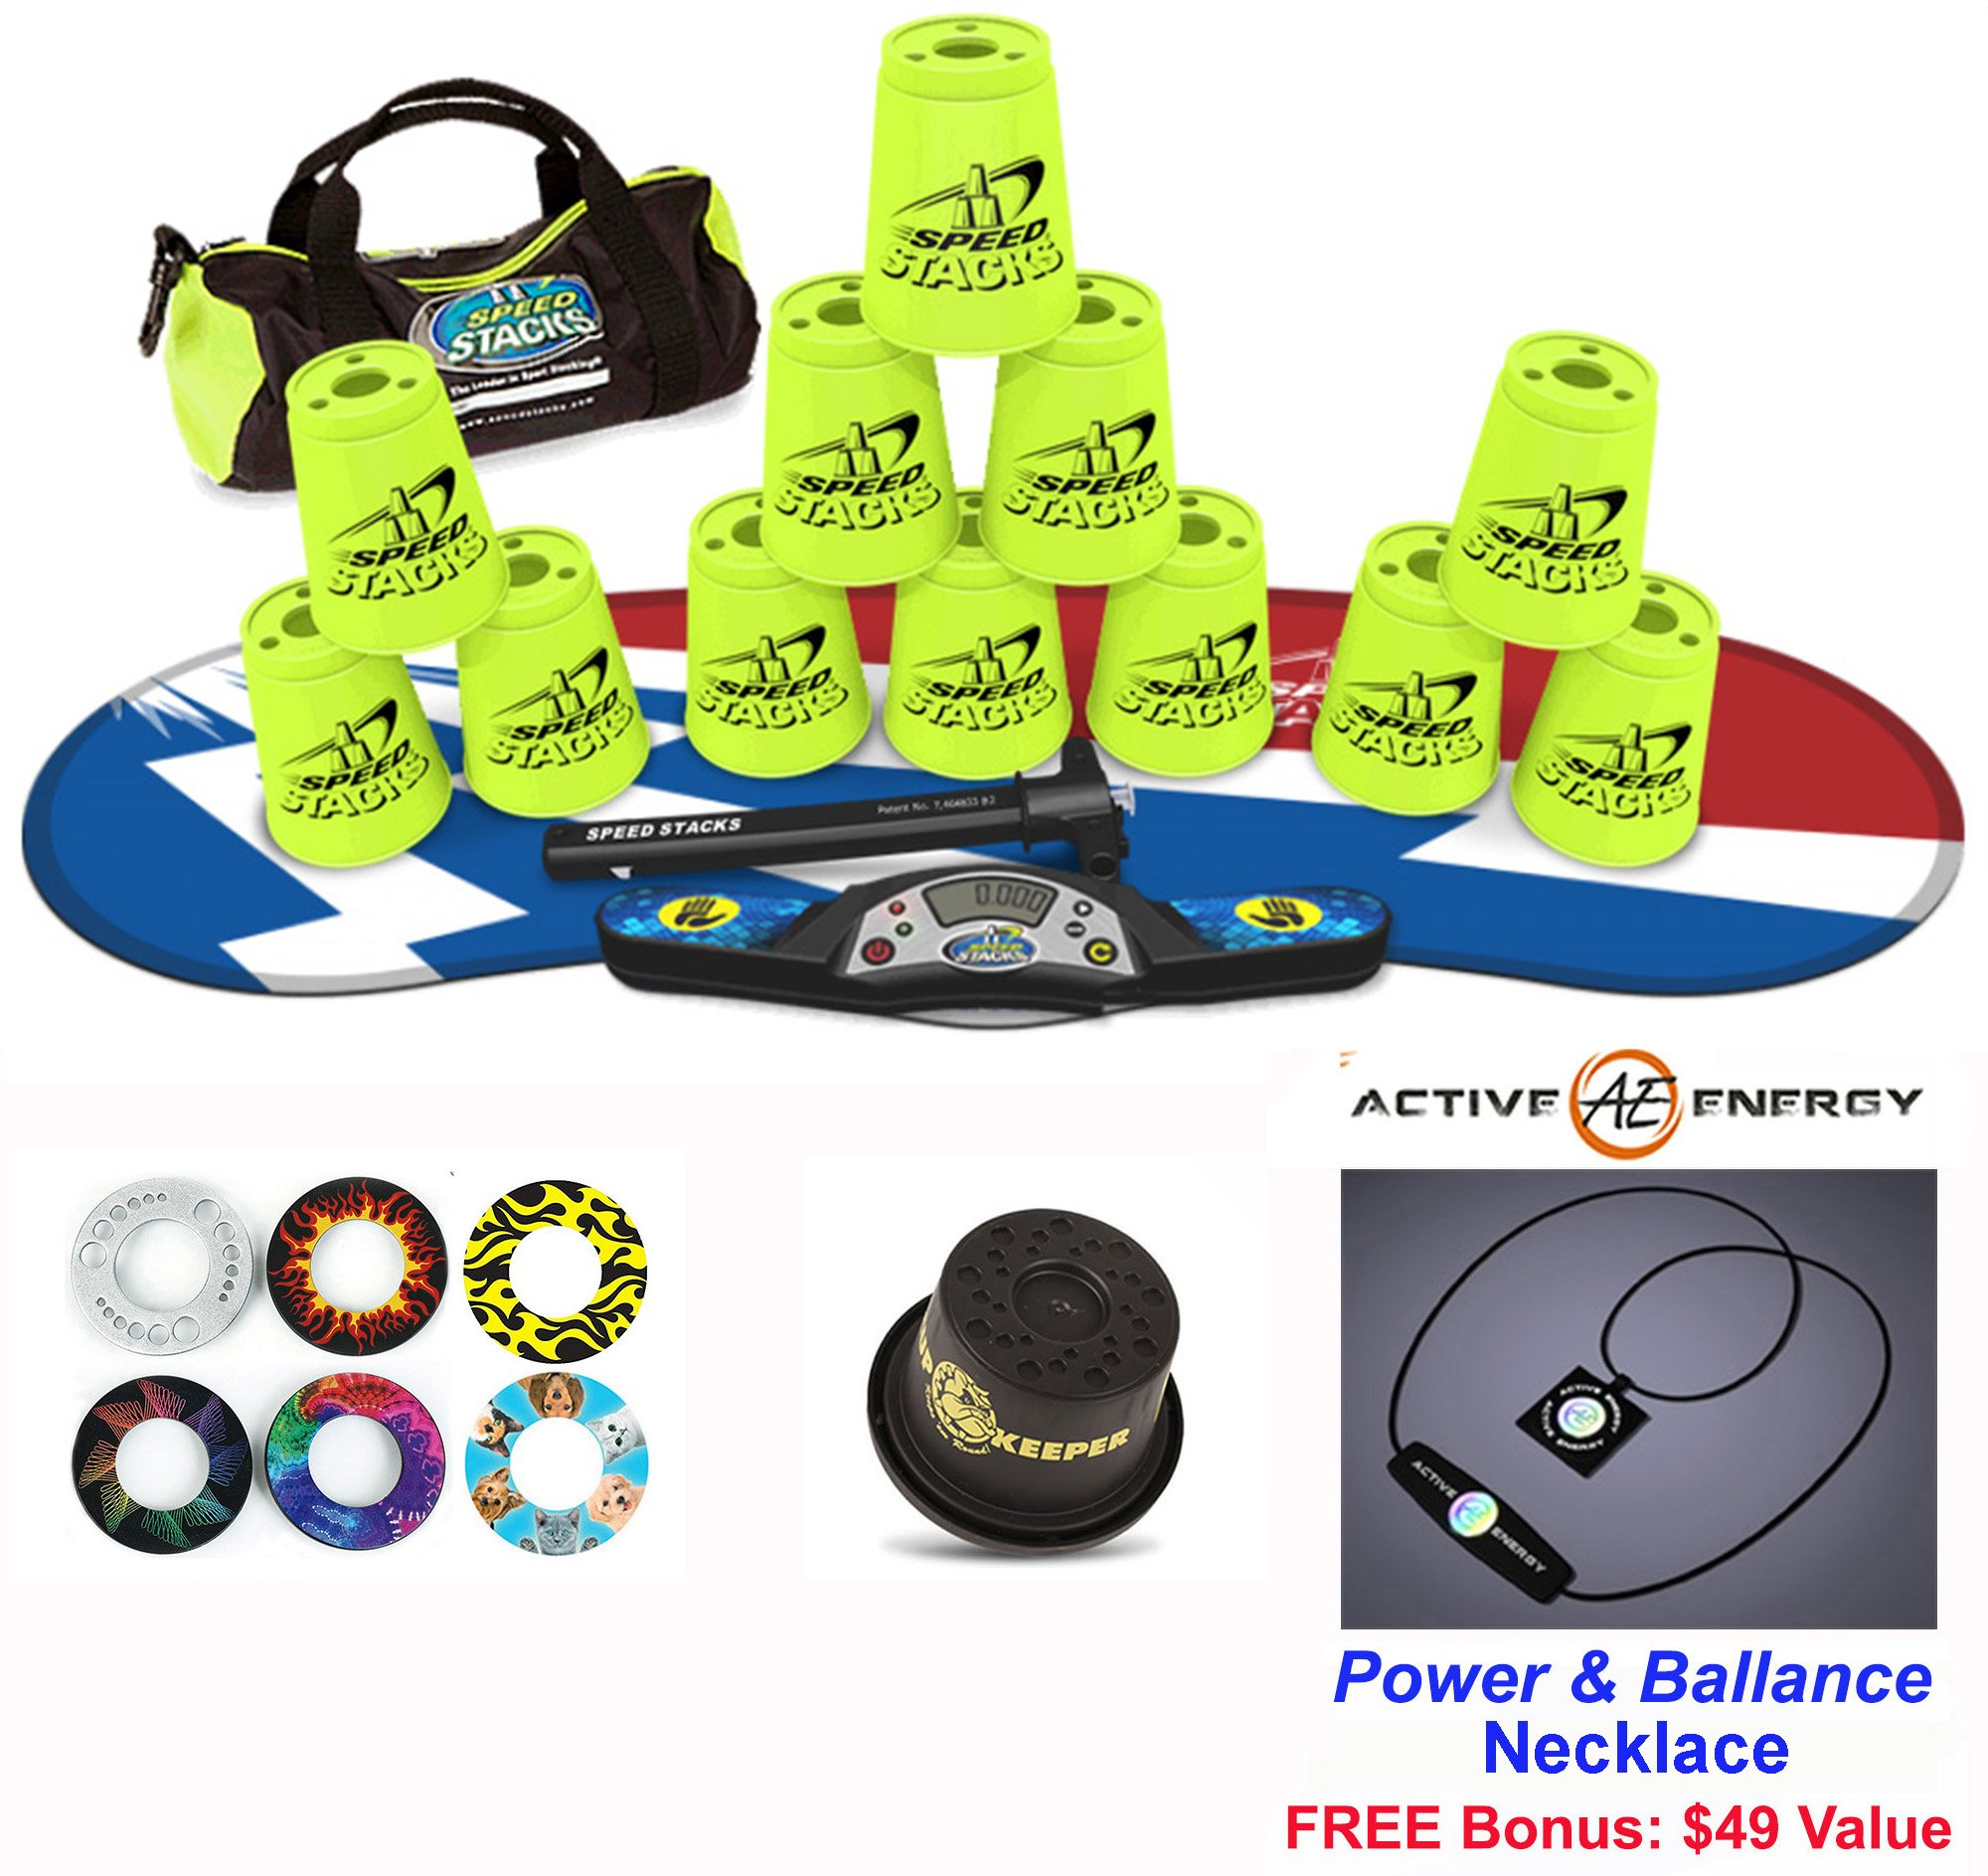 Speed Stacks Combo Set 'The Works'': 12 YELLOW 4'' Cups, Atomic Punch Gen 3 Mat, G4 Pro Timer, Cup Keeper, Stem, Gear Bag + Active Energy Necklace by Speed Stacks